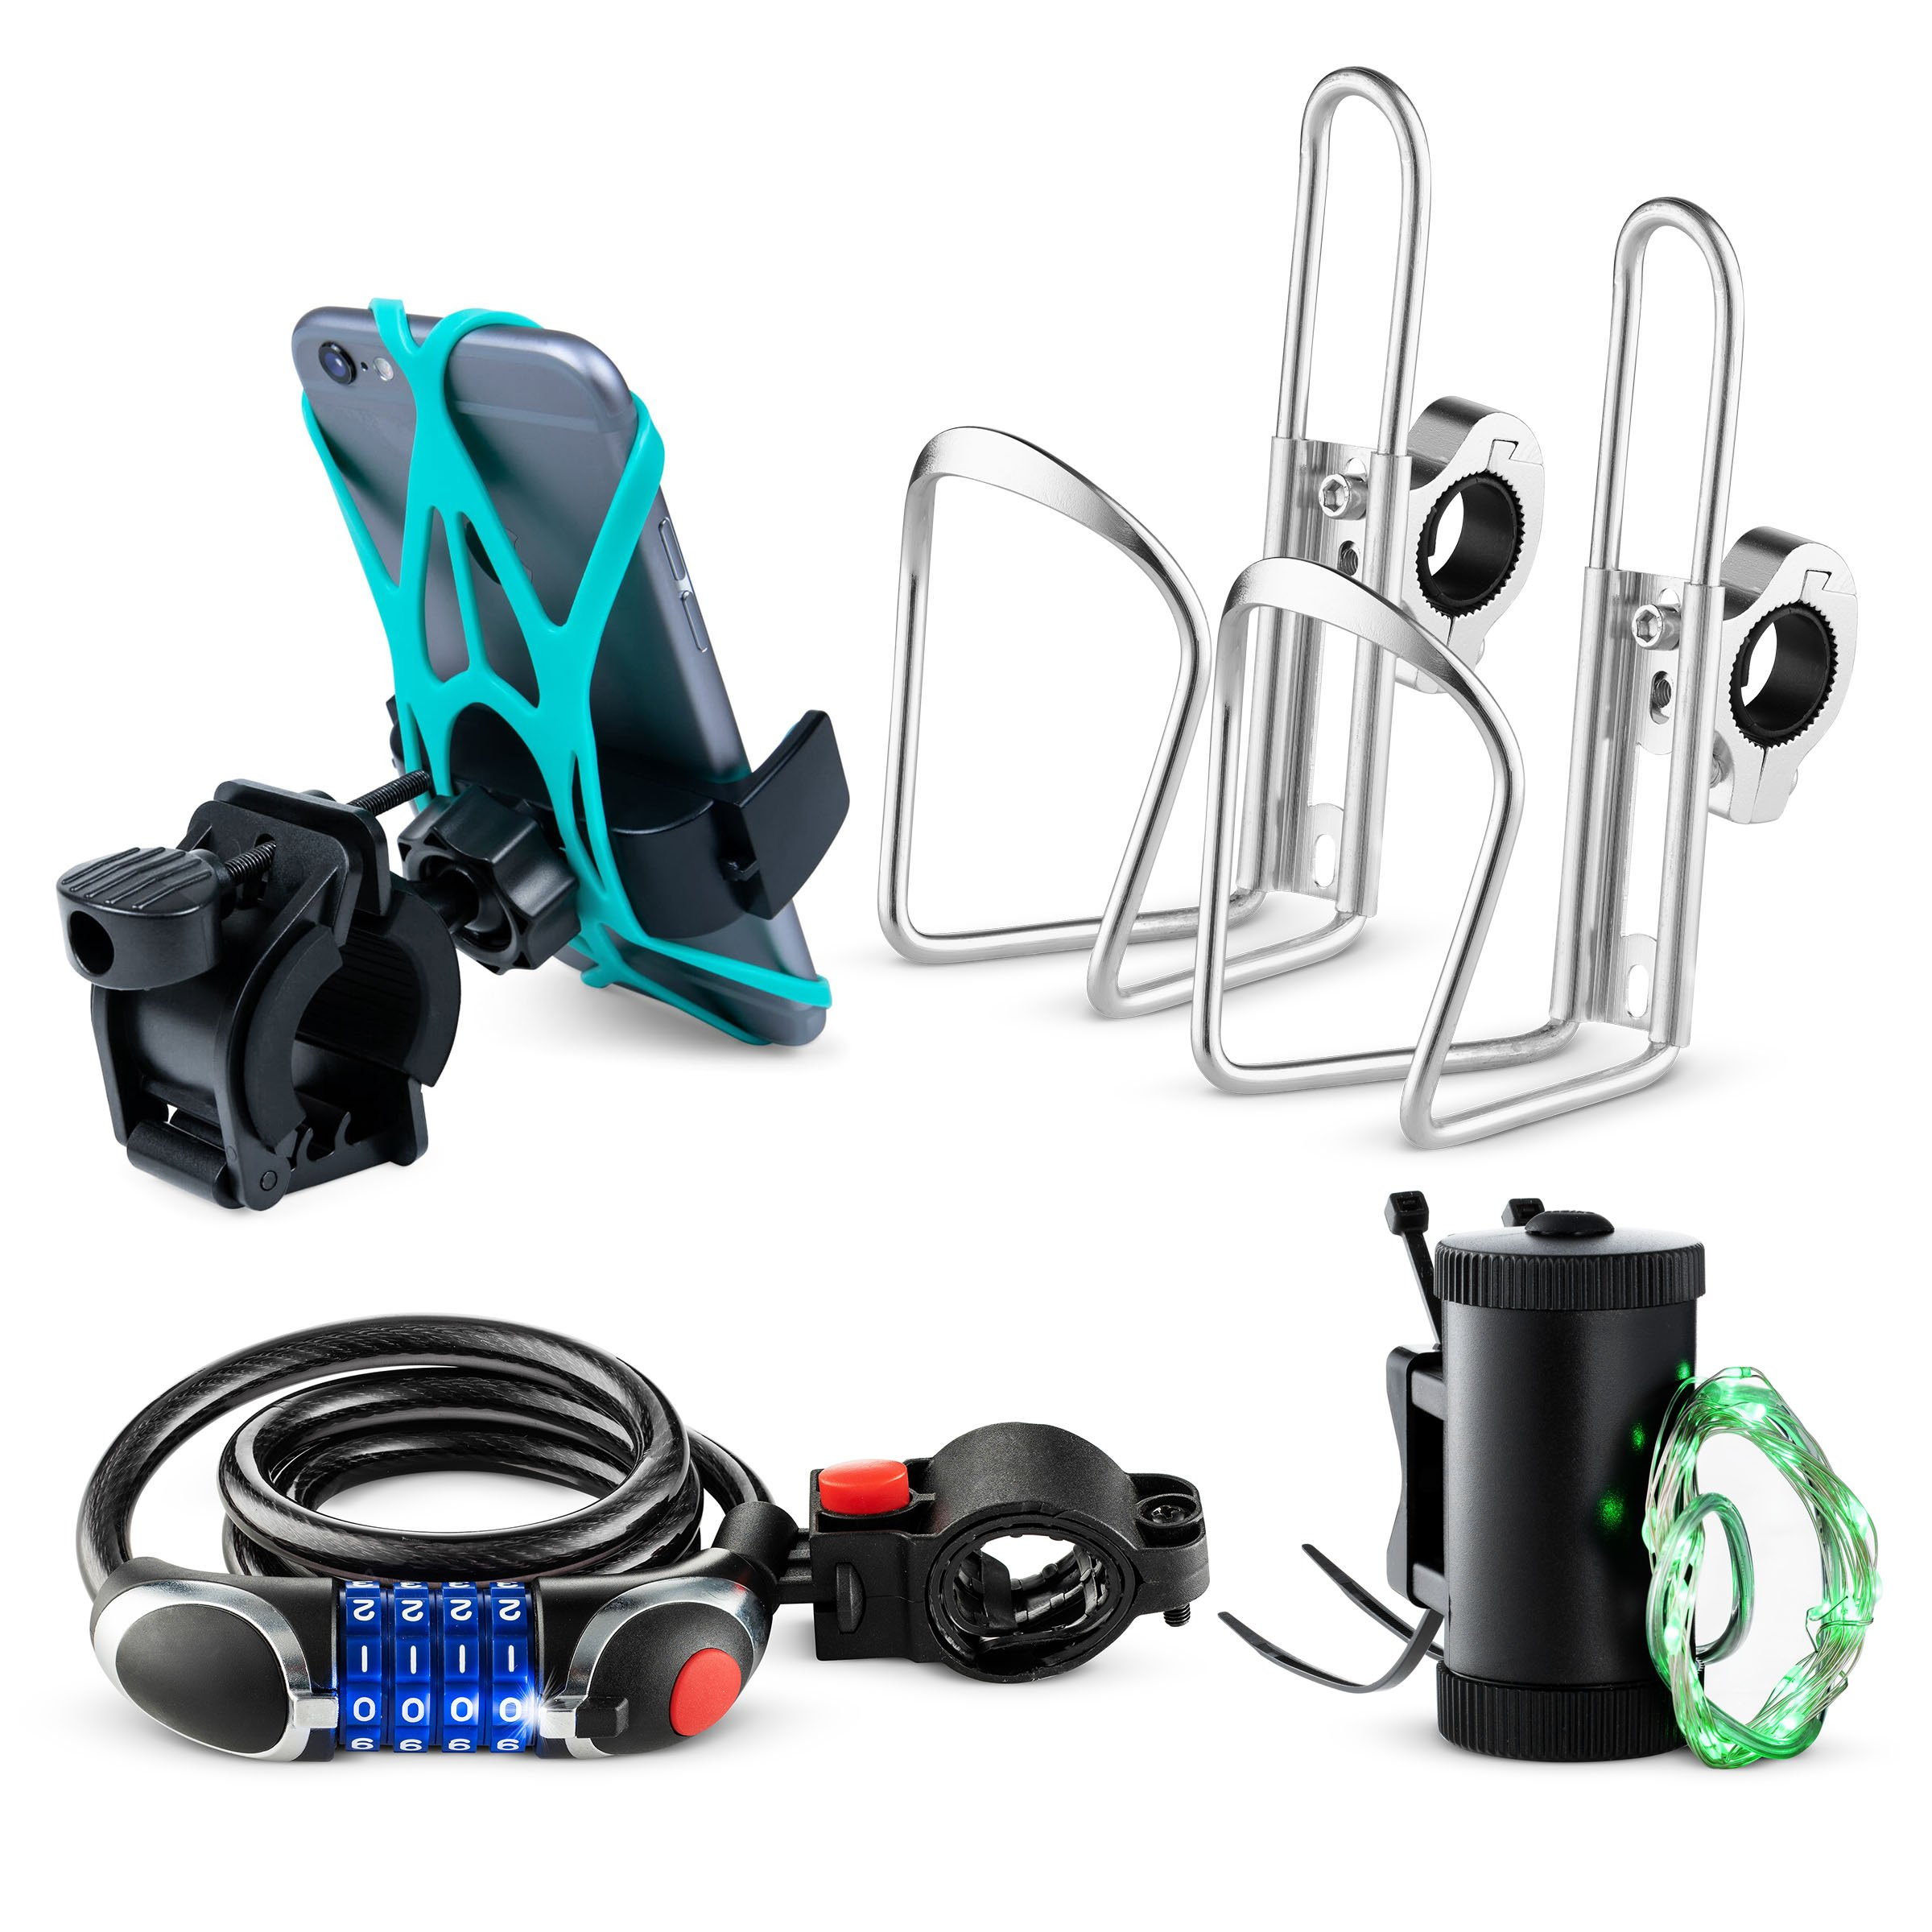 Bikes On Hikes 5 Piece Bike Accessory Kit Green - Includes Handle Bar Cup Holder (2), Led Wheel Light (1), LED Combination Lock (1), Phone Mount (1) - Perfect All in One Set for Bike/MTB Riding